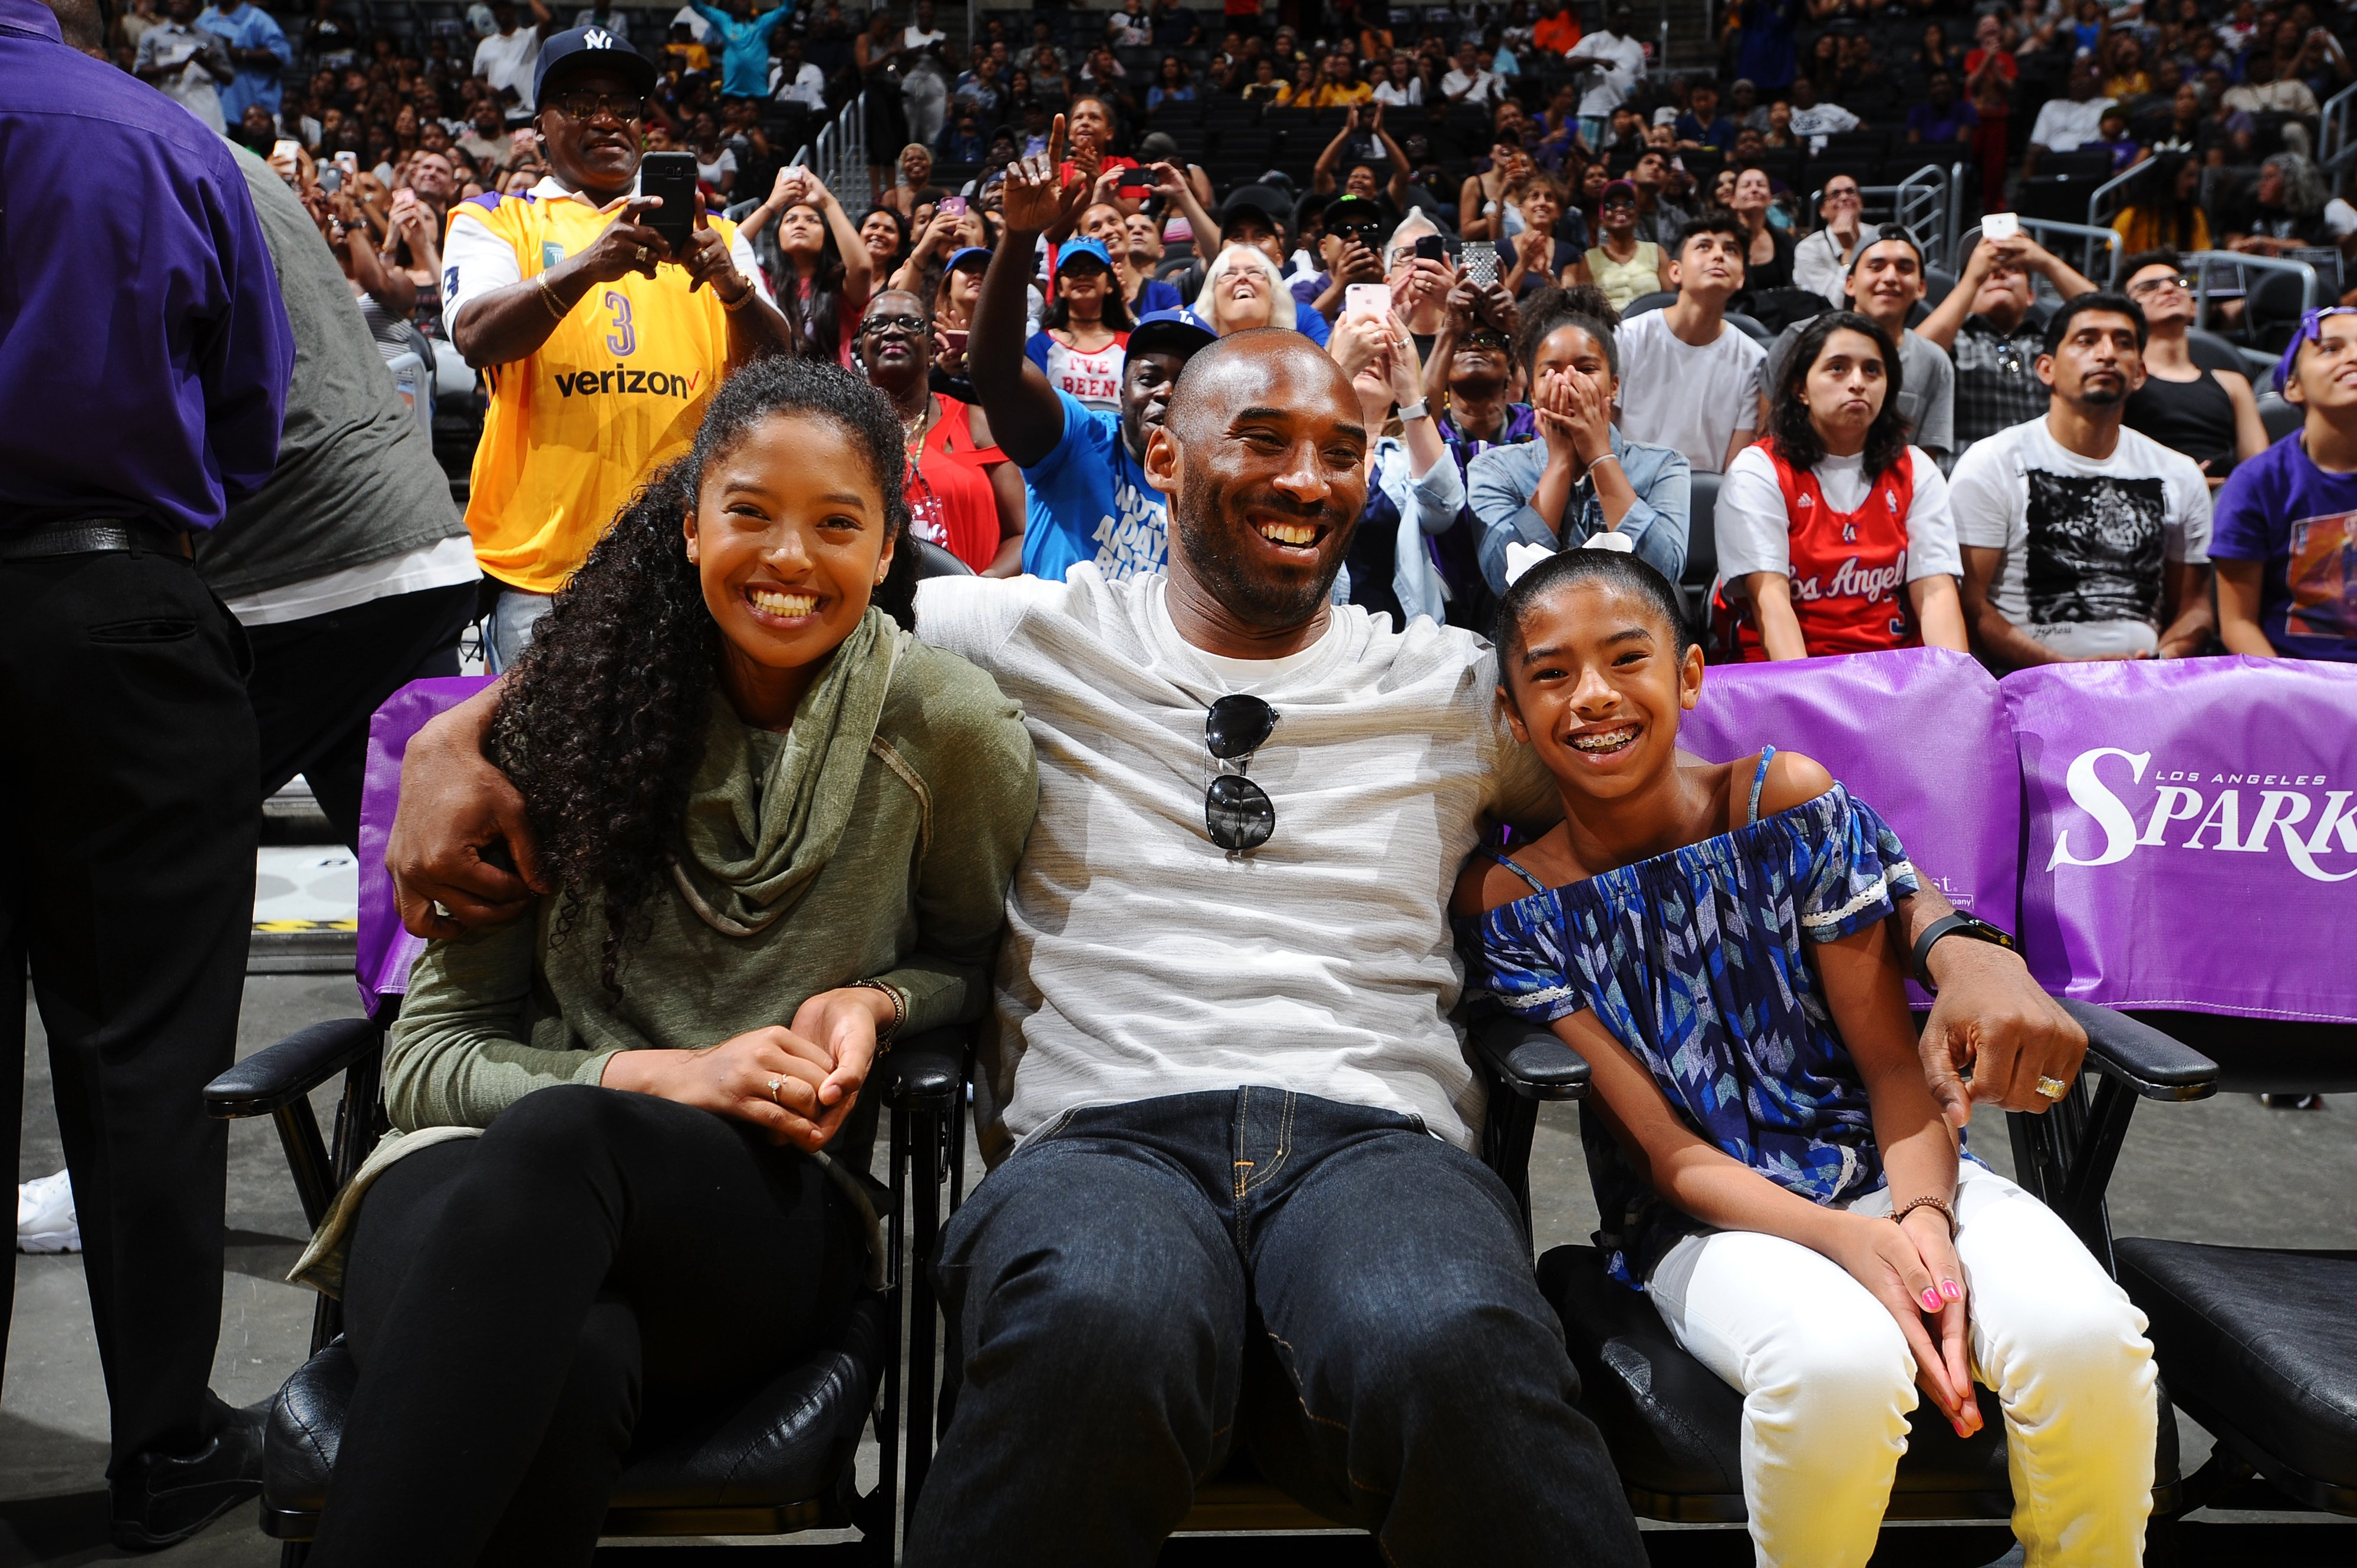 Image Source: Getty Images/Kobe with Nani and Gigi